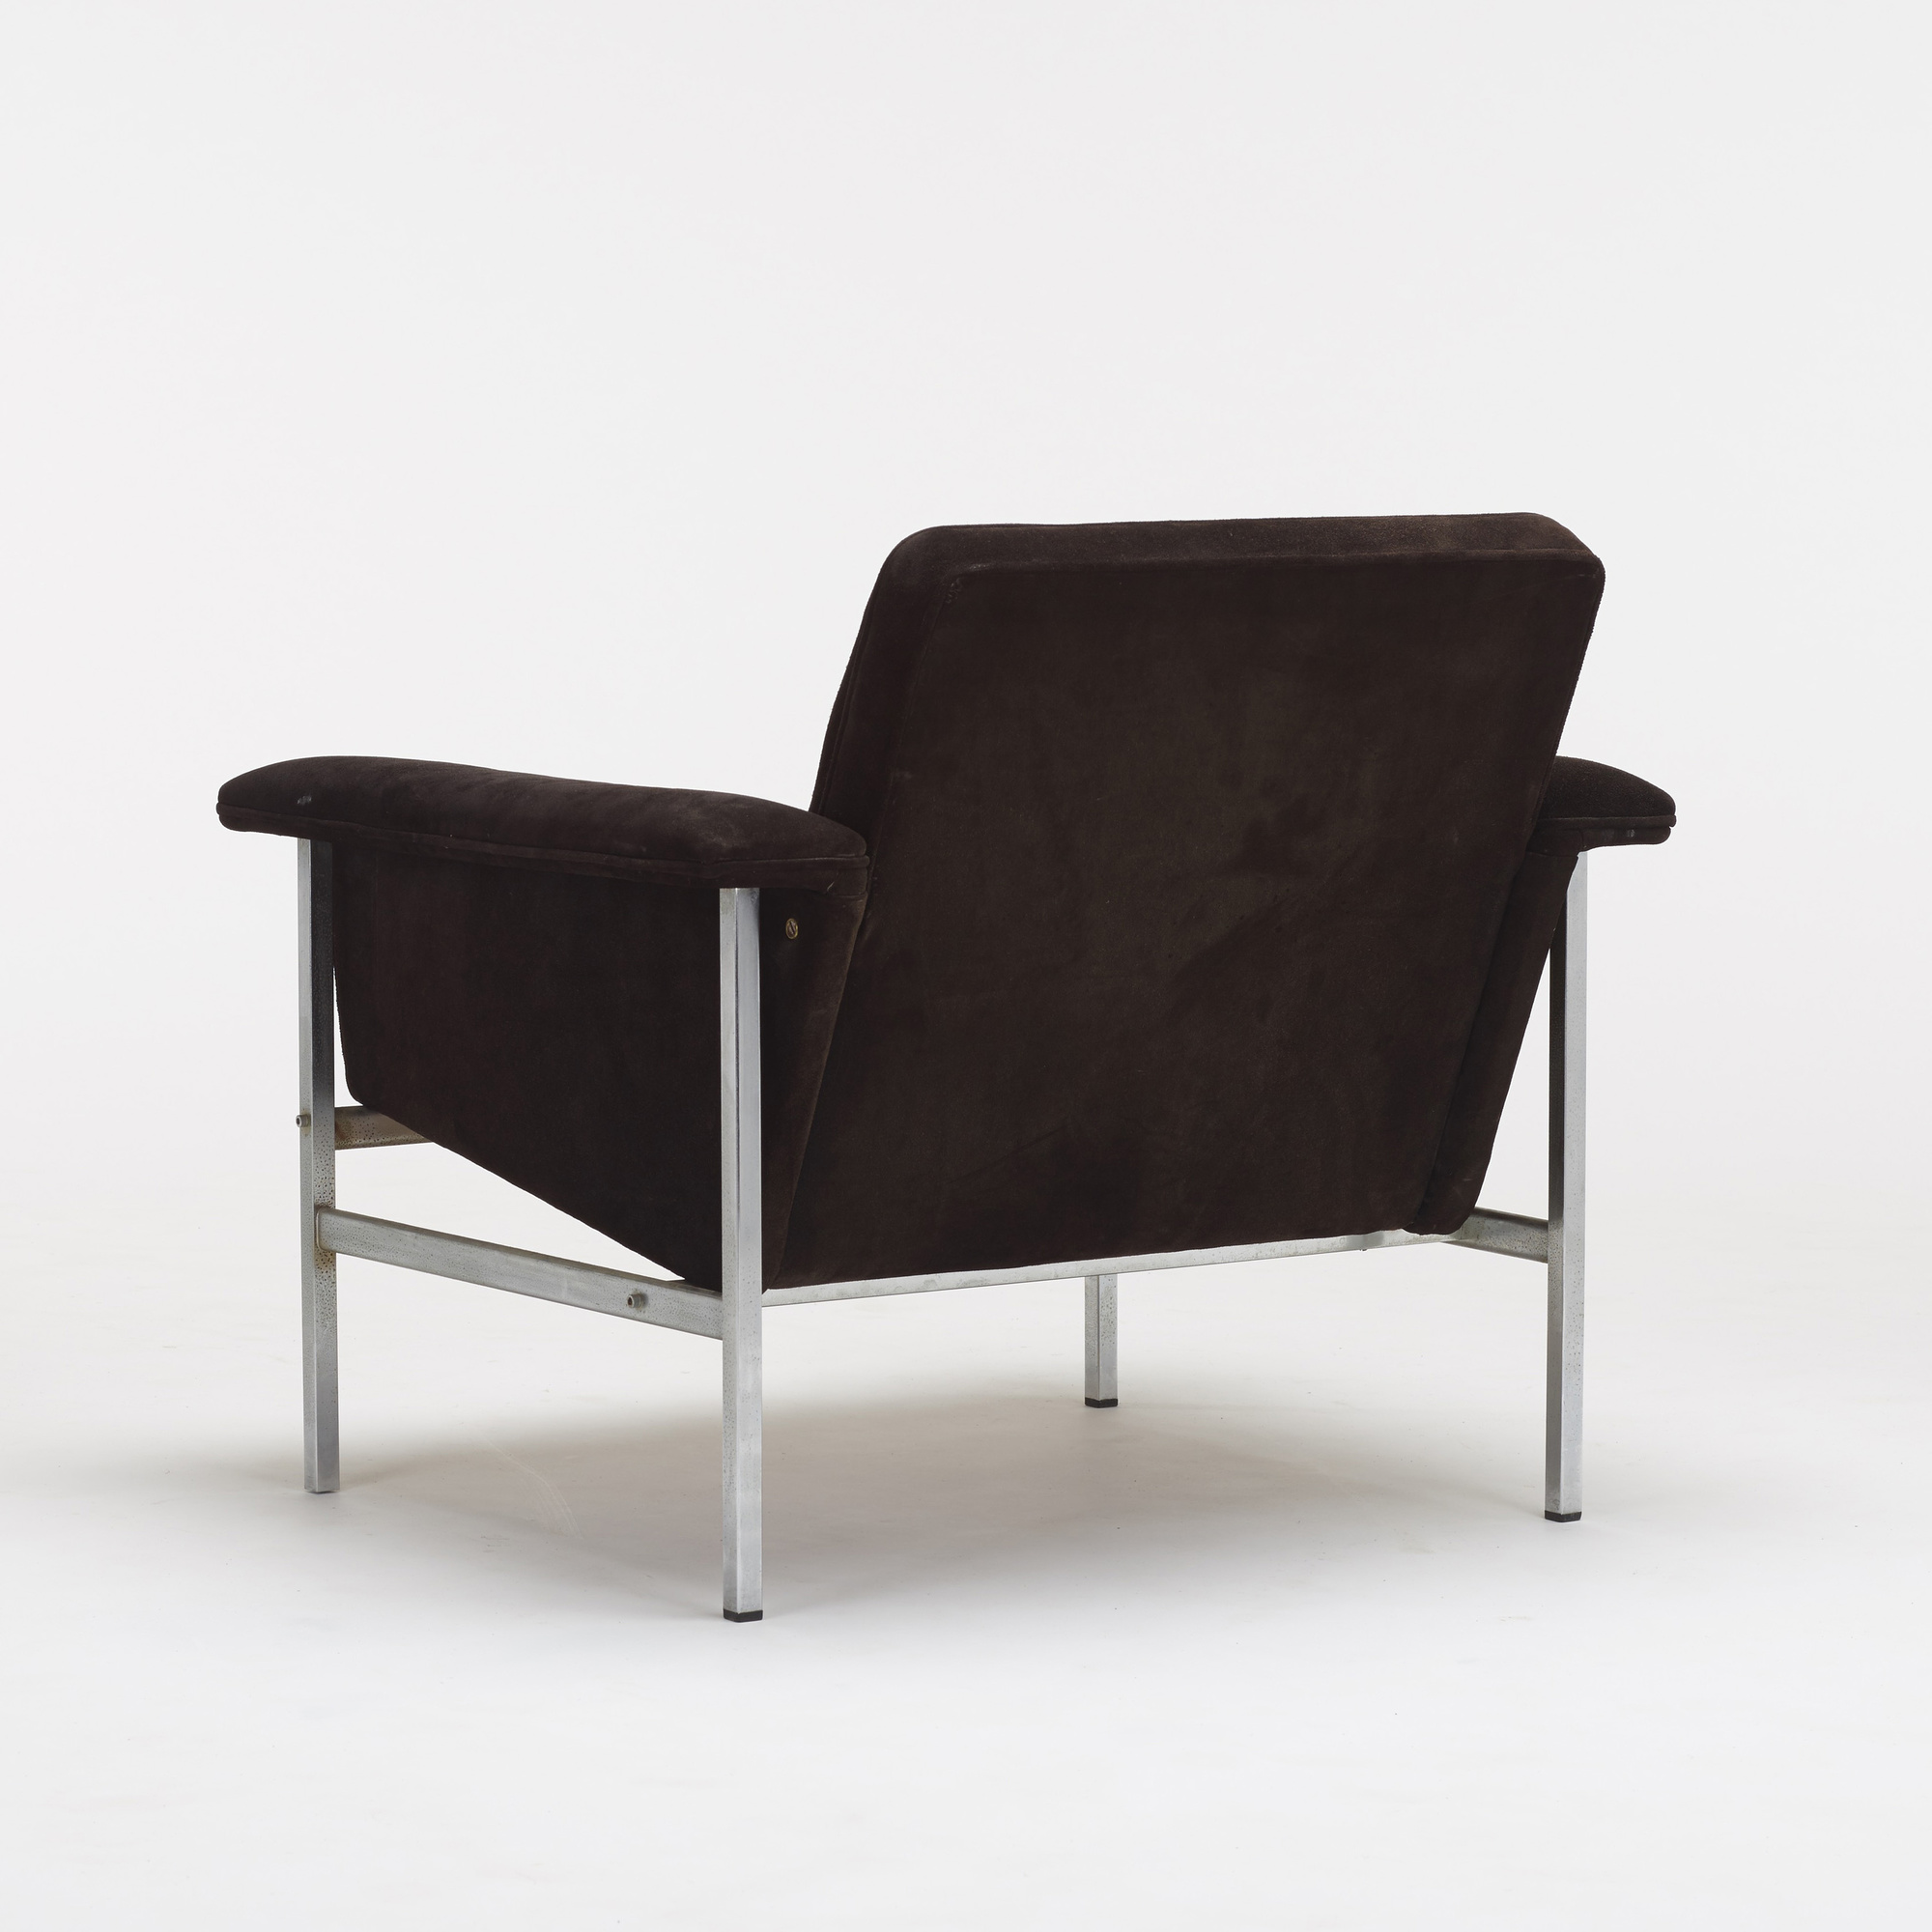 607: Modernist / lounge chair (2 of 2)